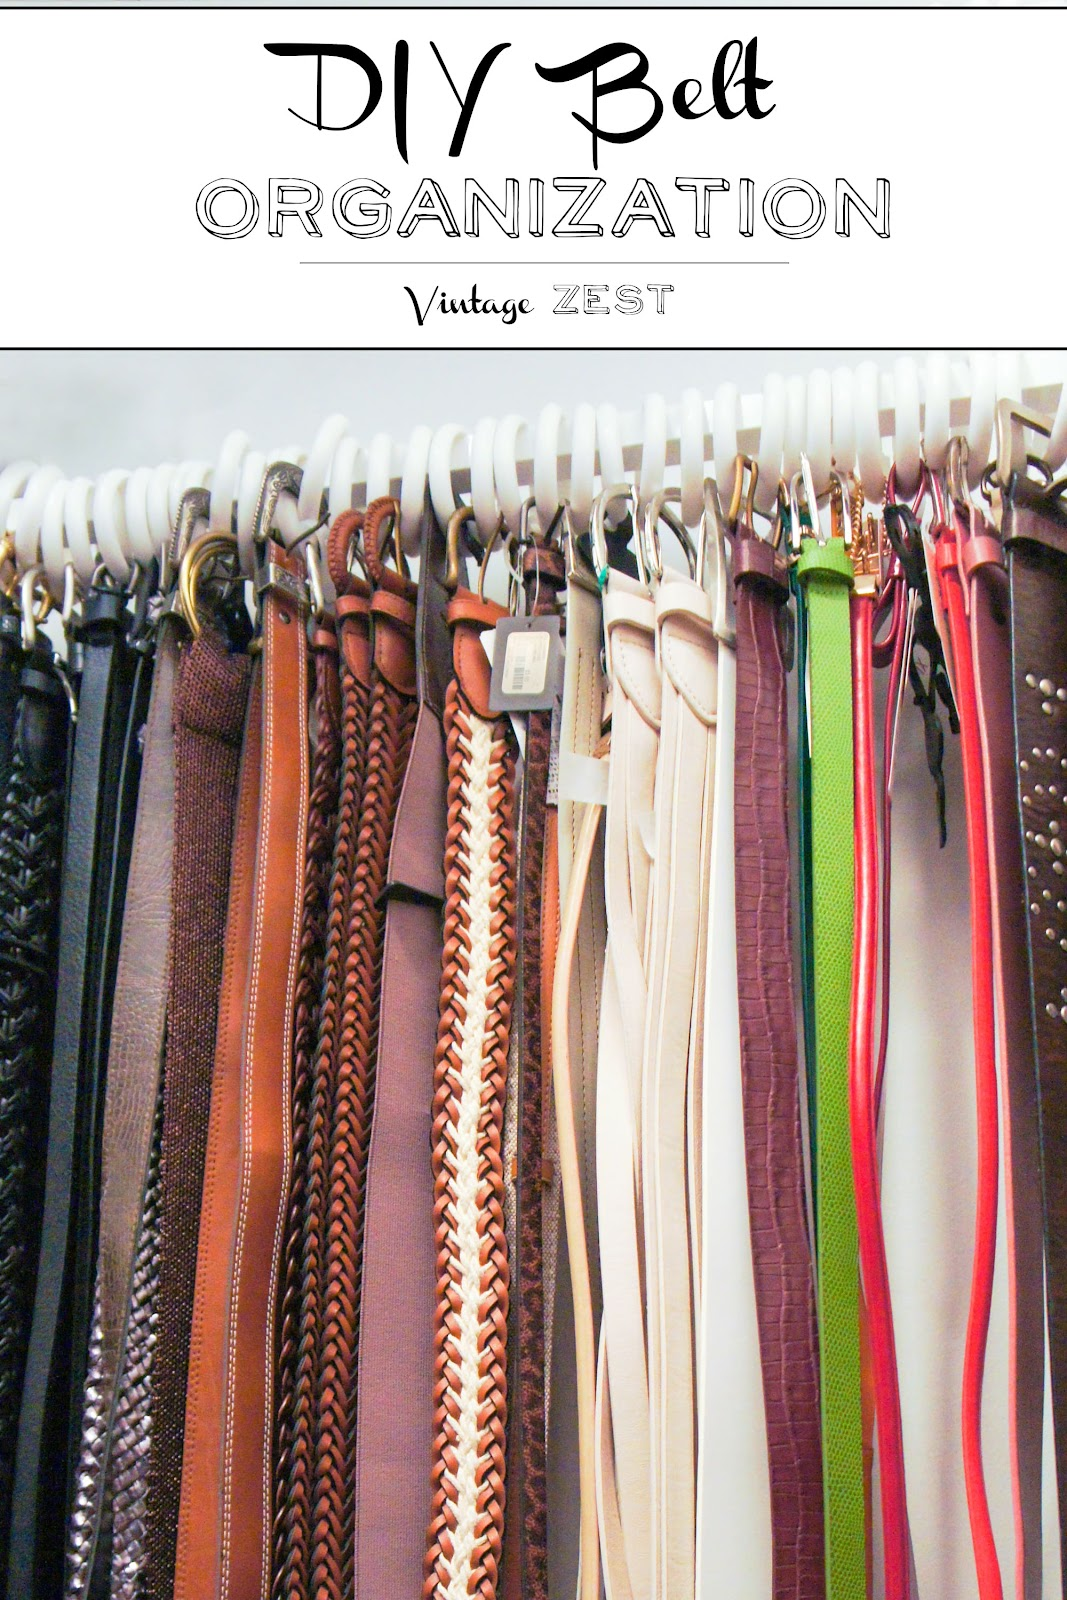 DIY Belt Organization (on a budget!) on Diane's Vintage Zest